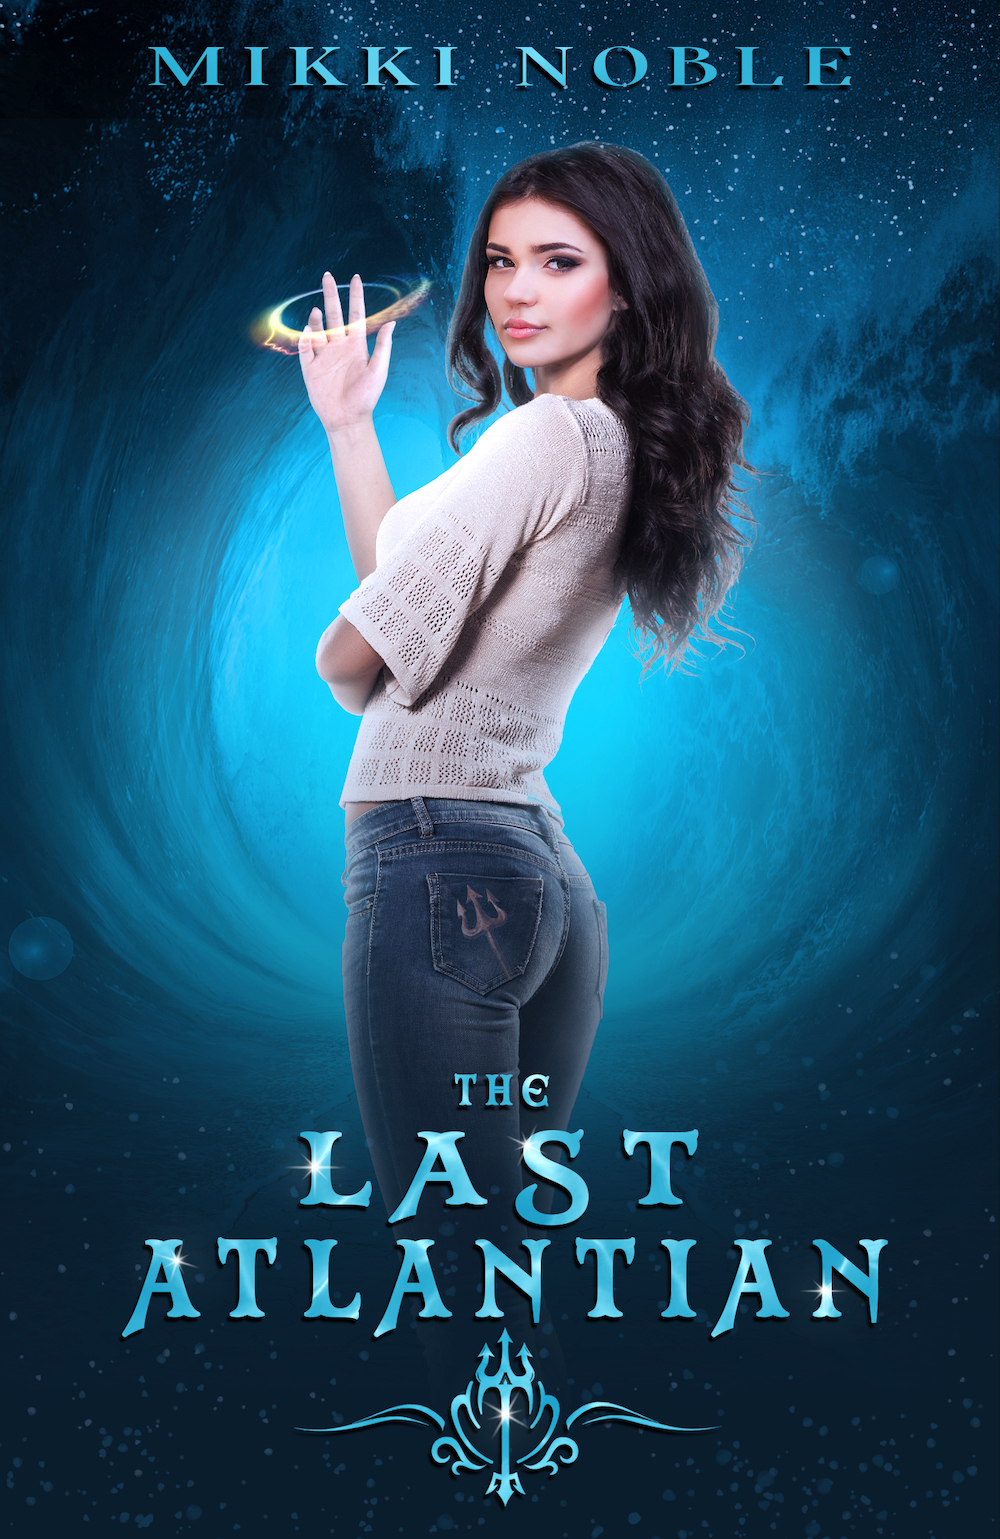 The Last Atlantian by Mikki Noble